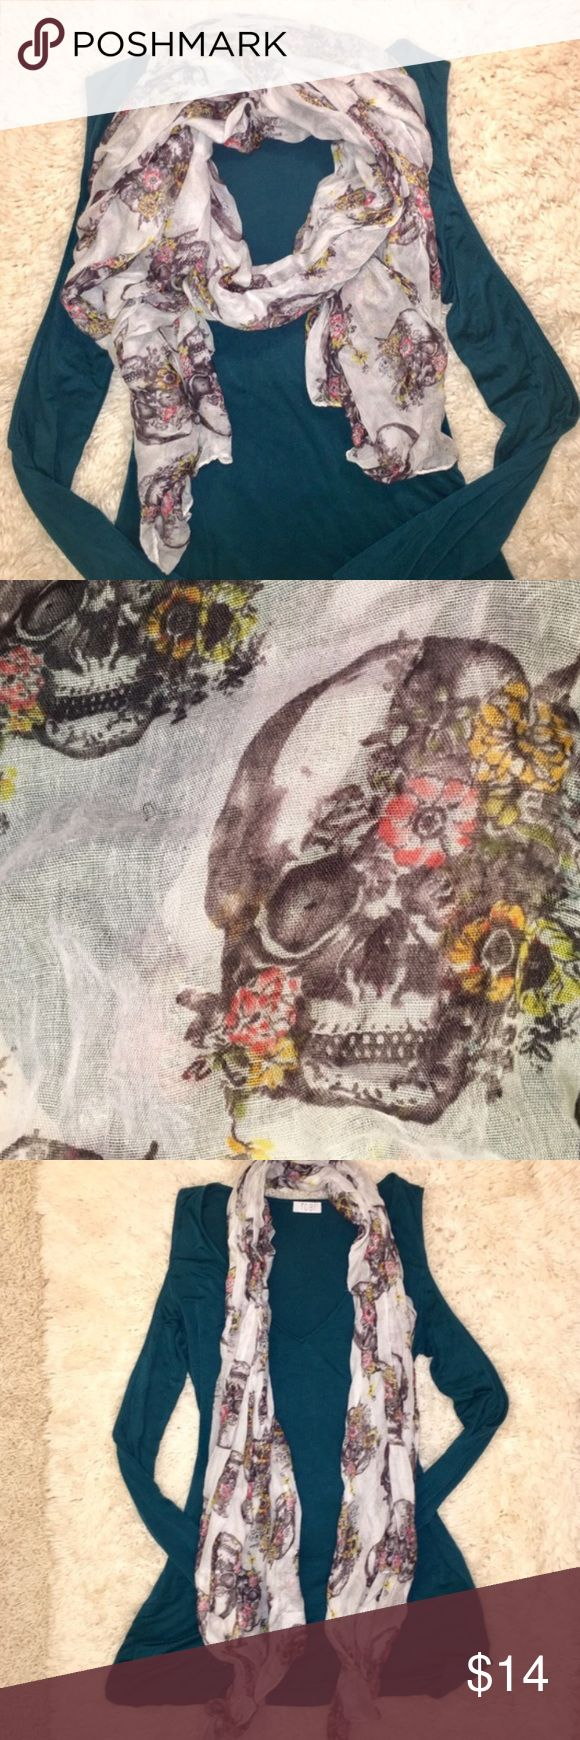 Multi way Floral & Skull Print White Scarf. Multi way Floral And Skull Print White Wrap Scarf. 💐Bundle and save 20%. Accessories Scarves & Wraps